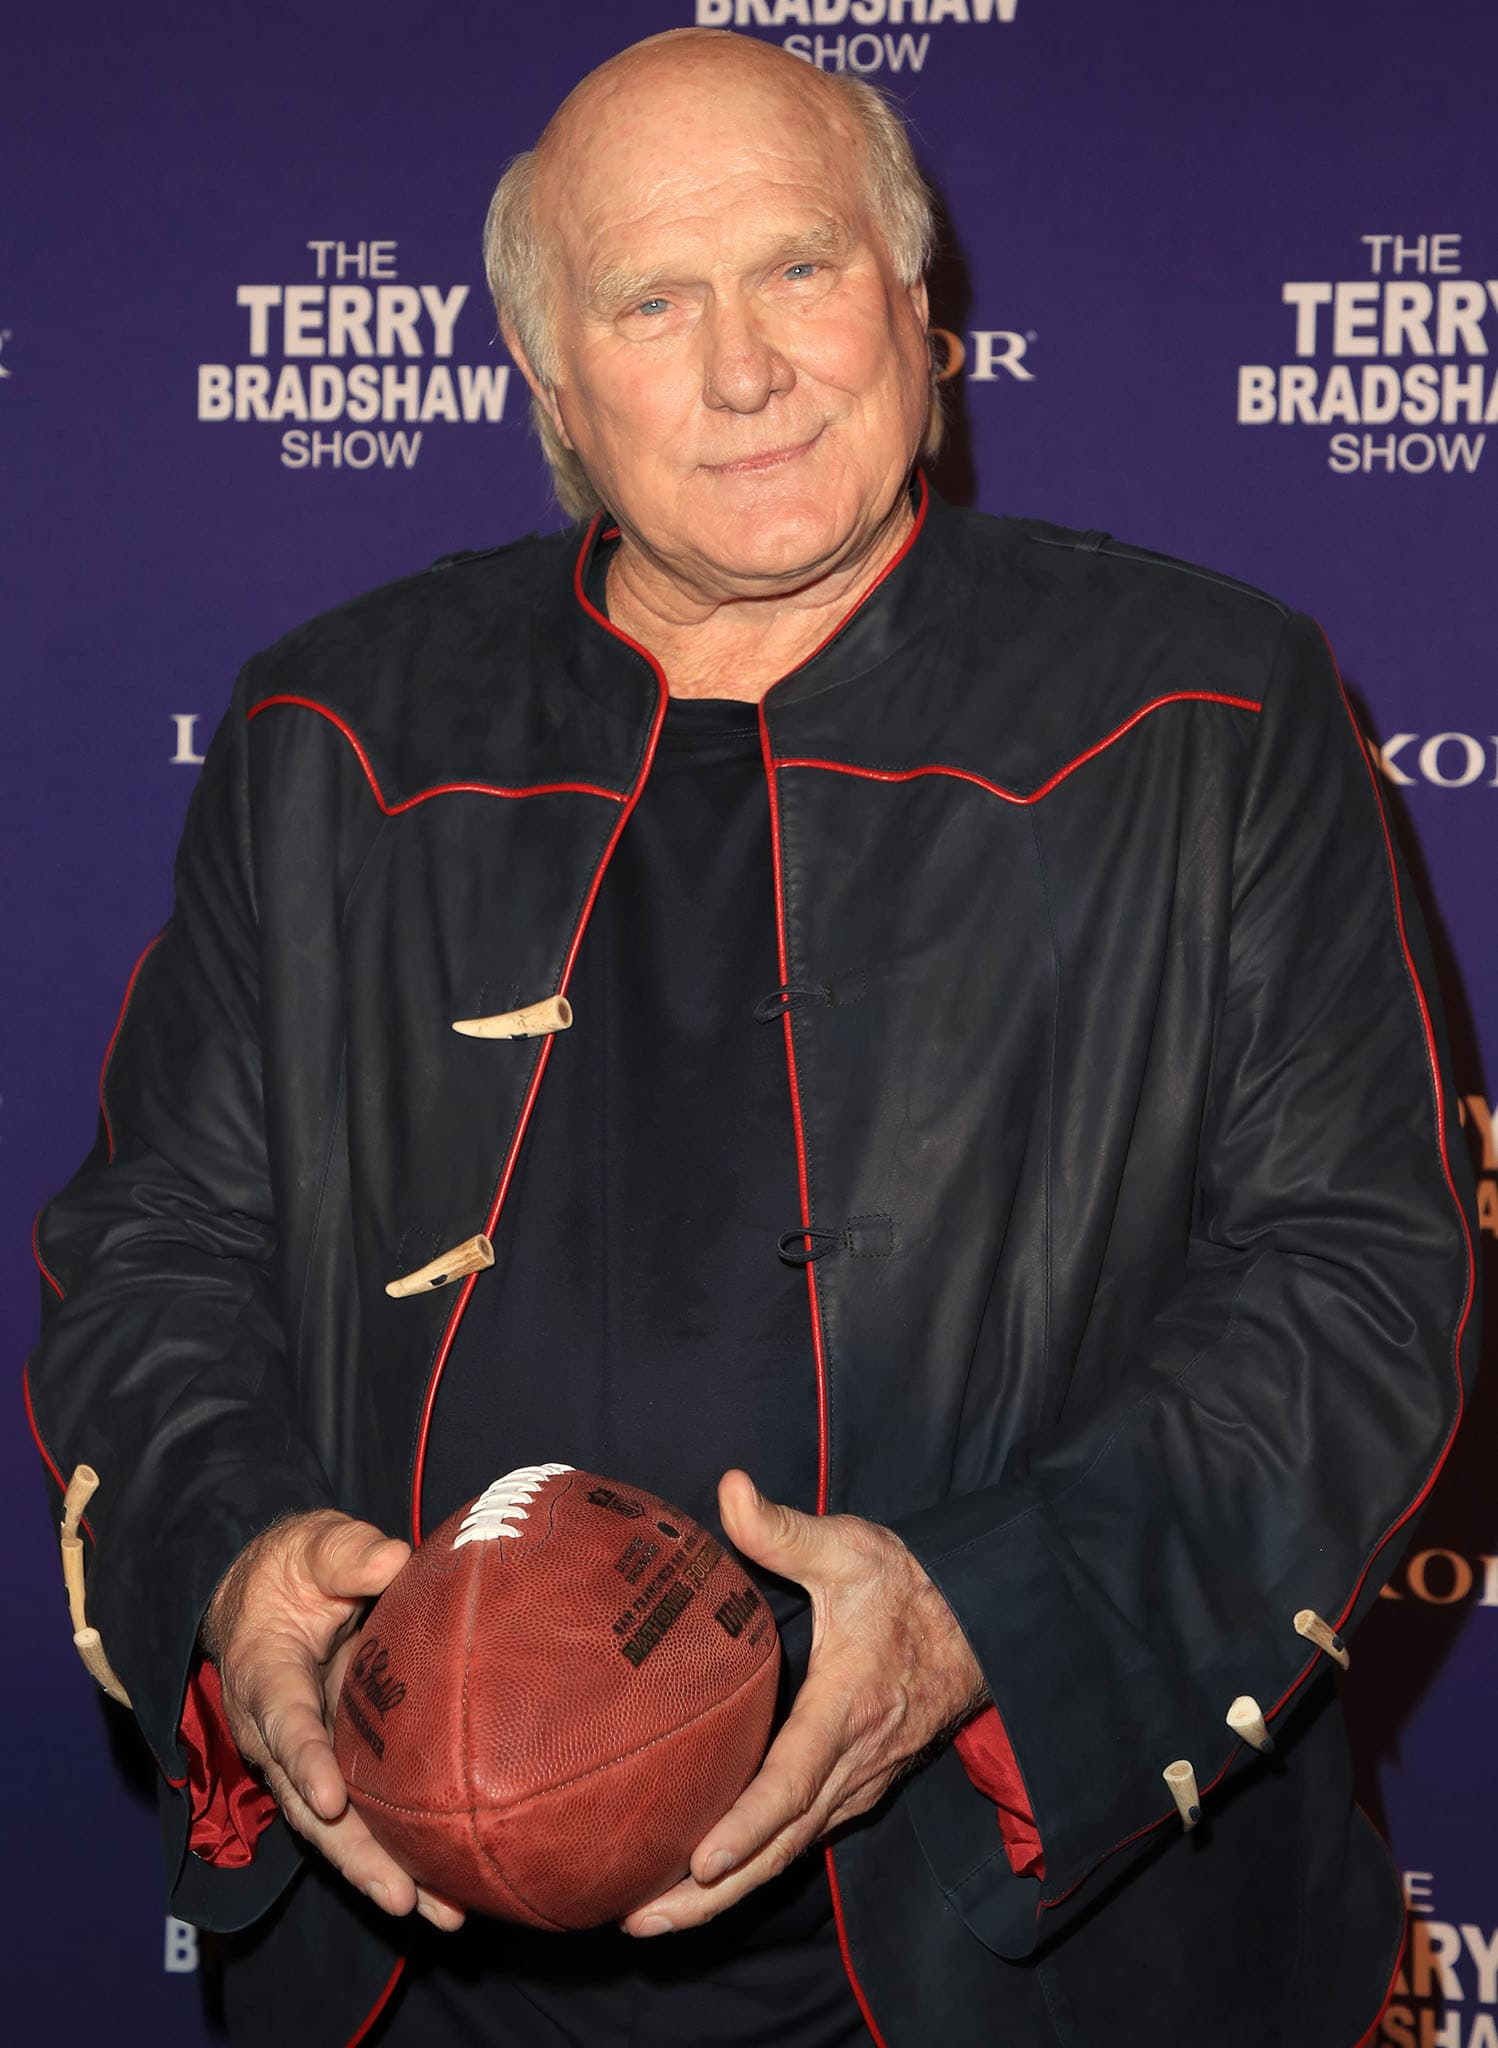 Terry Bradshaw at The Terry Bradshaw Show at Luxor Hotel and Casino on August 2, 2019